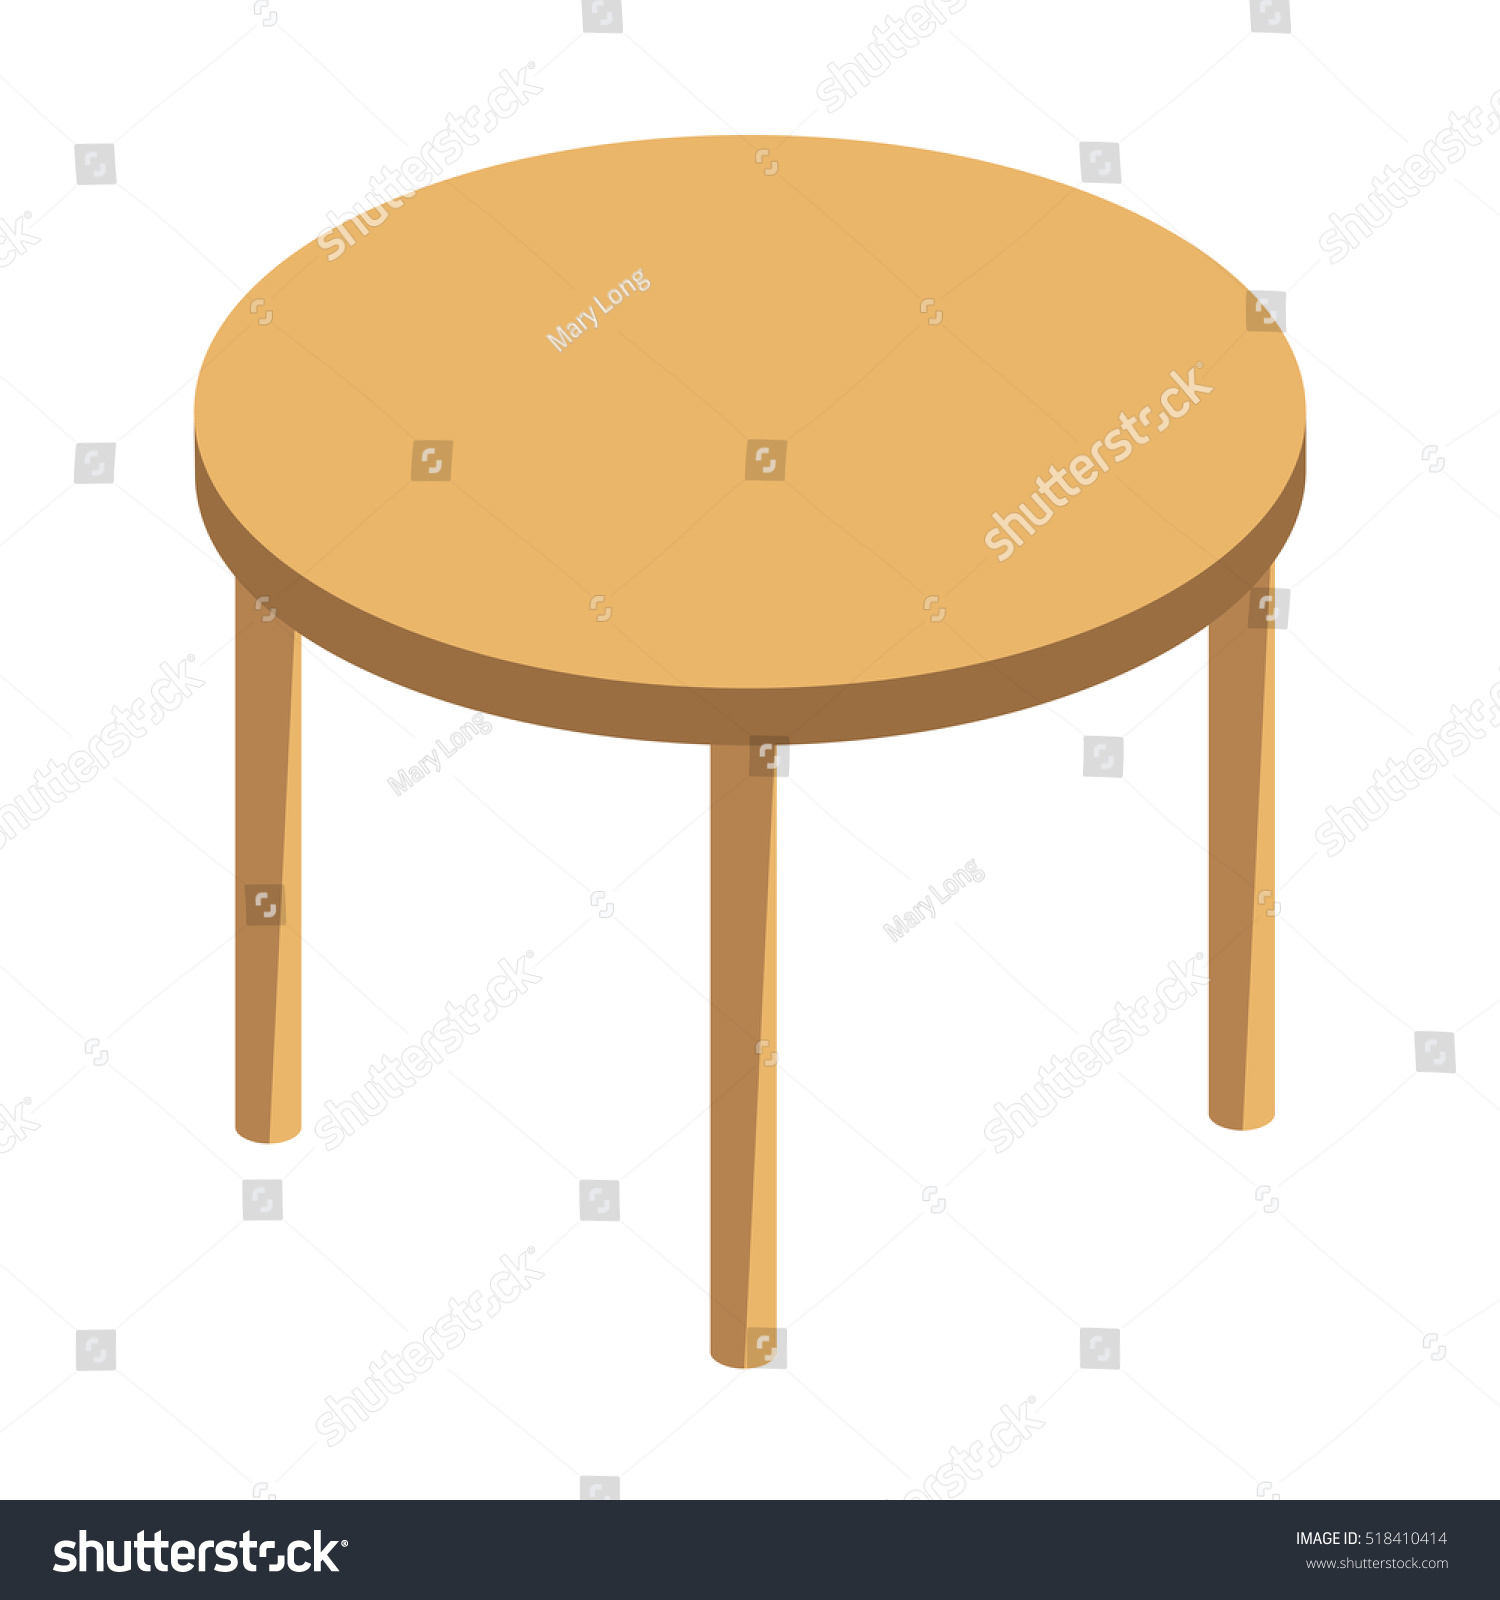 Round Wooden Table Isolated Illustration On Stock Vector 518410414  Shutterstock